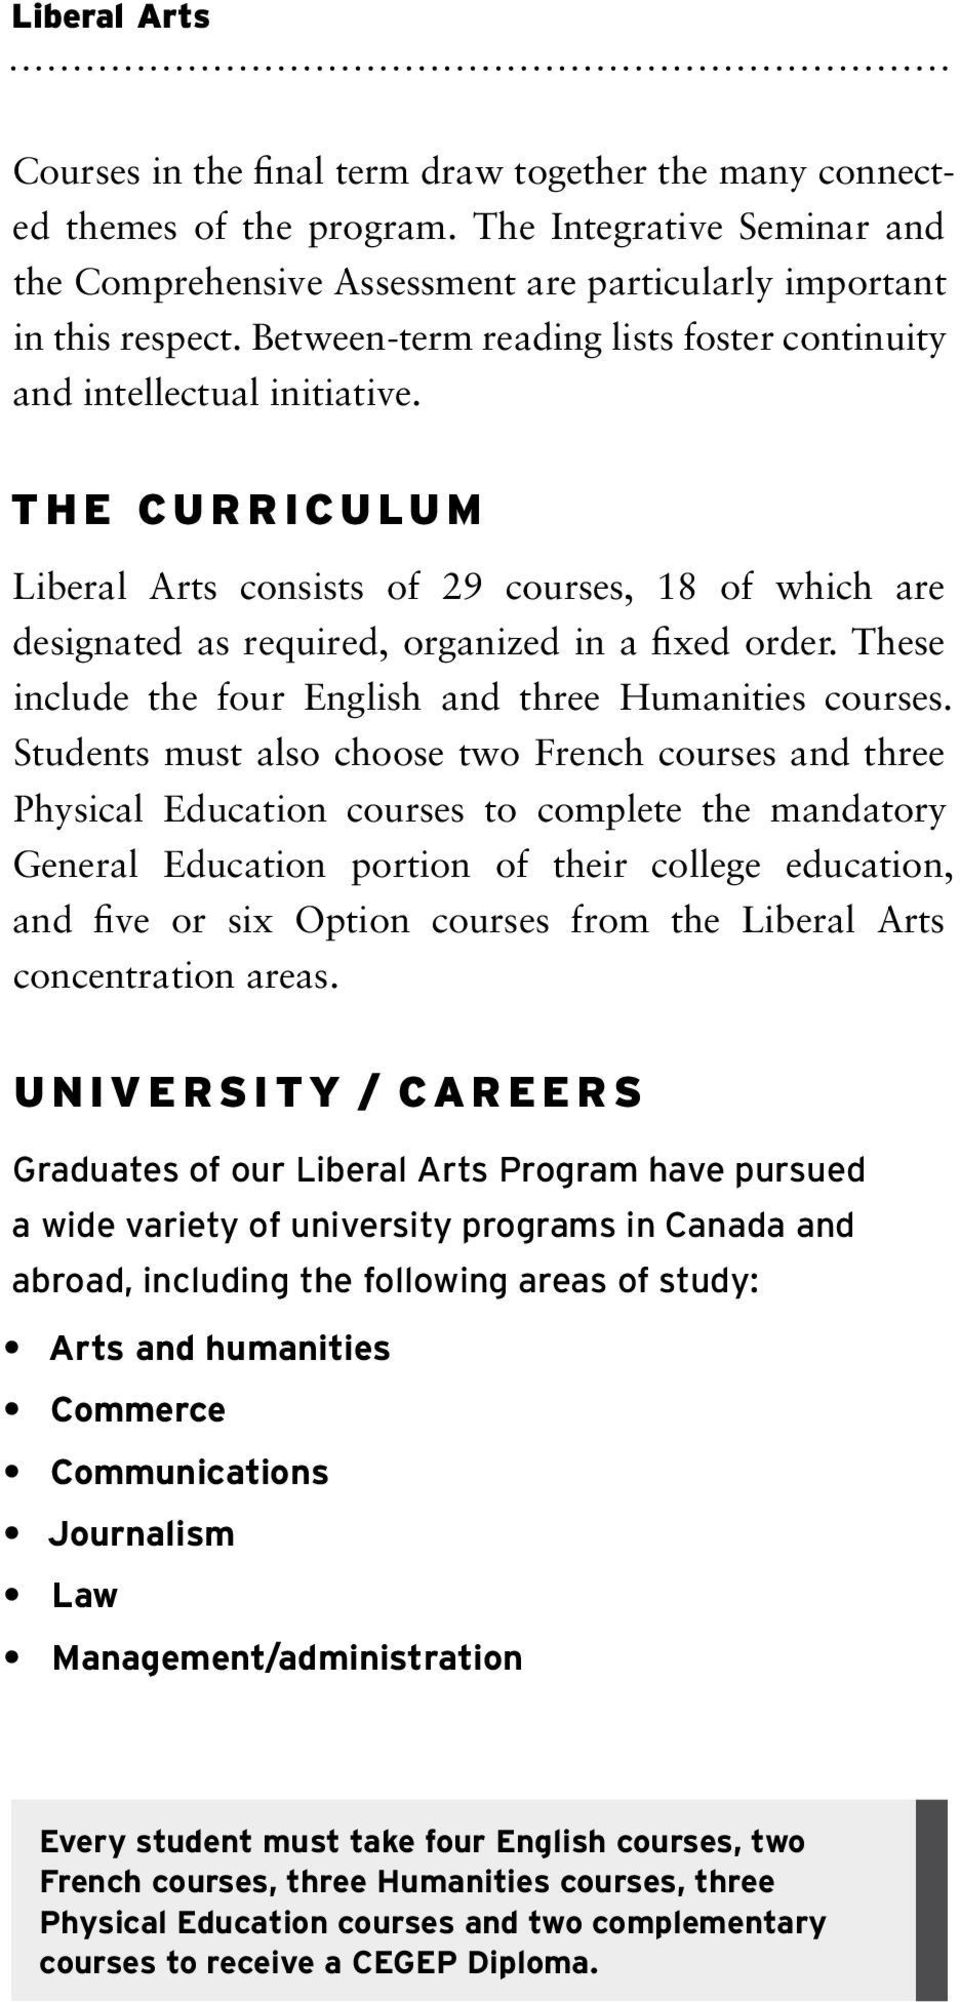 T h e C u r r i c u lu m Liberal Arts consists of 29 courses, 18 of which are designated as required, organized in a fixed order. These include the four English and three Humanities courses.